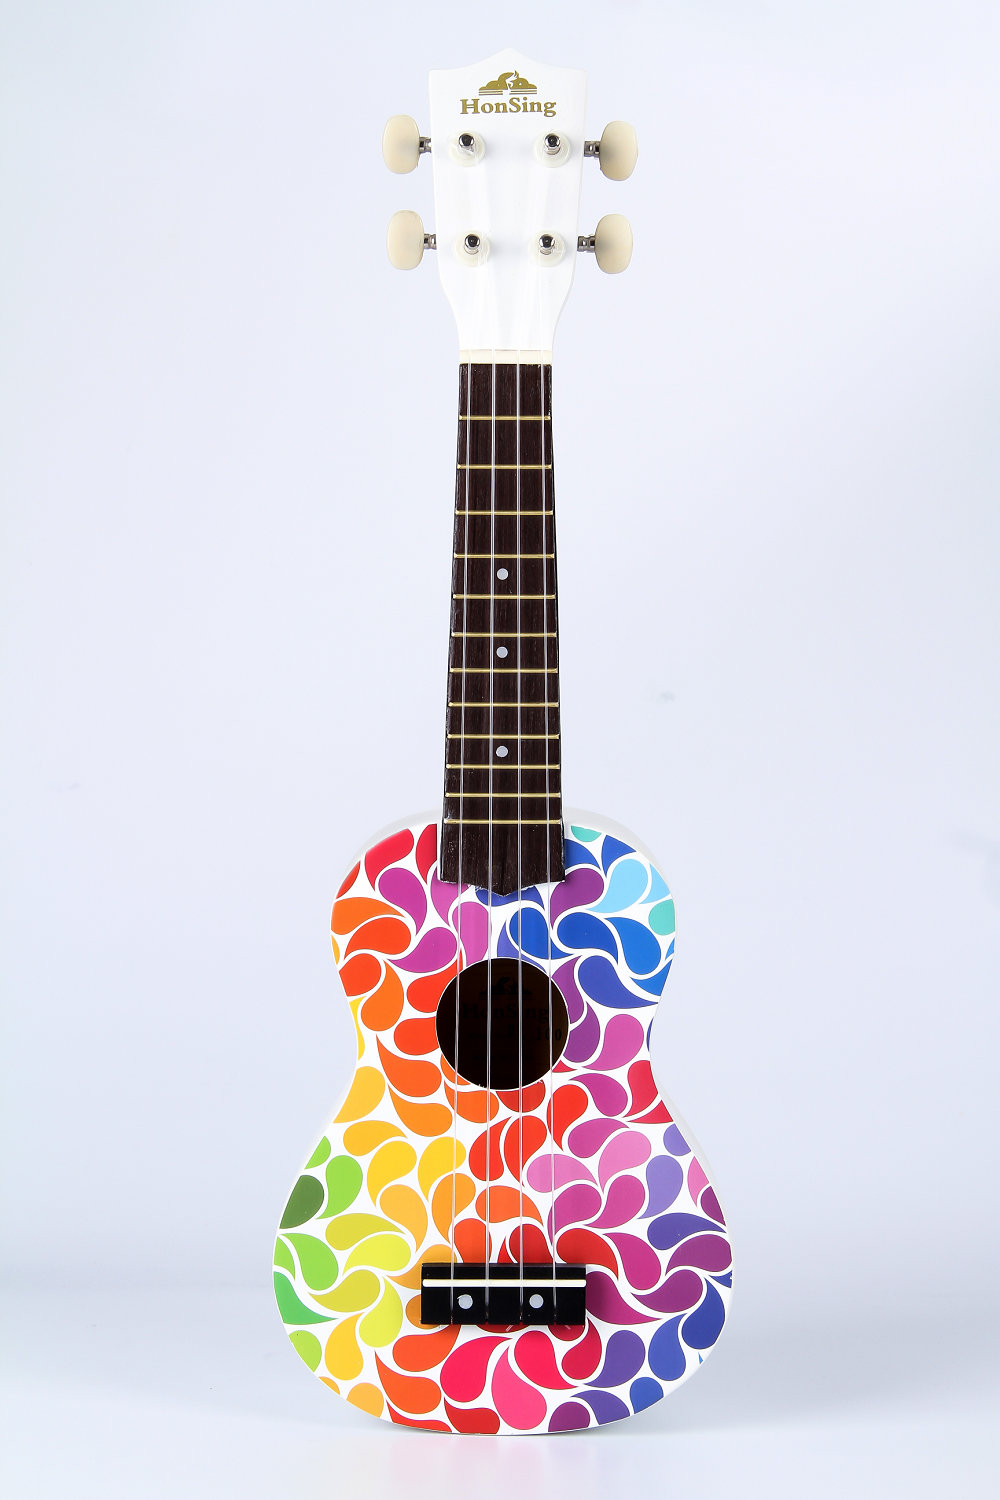 The ukulele is an instrument that is rich with history and tradition. First appearing in Hawaii in the s, the 'uke' has found a unique home for itself in both traditional and popular music.